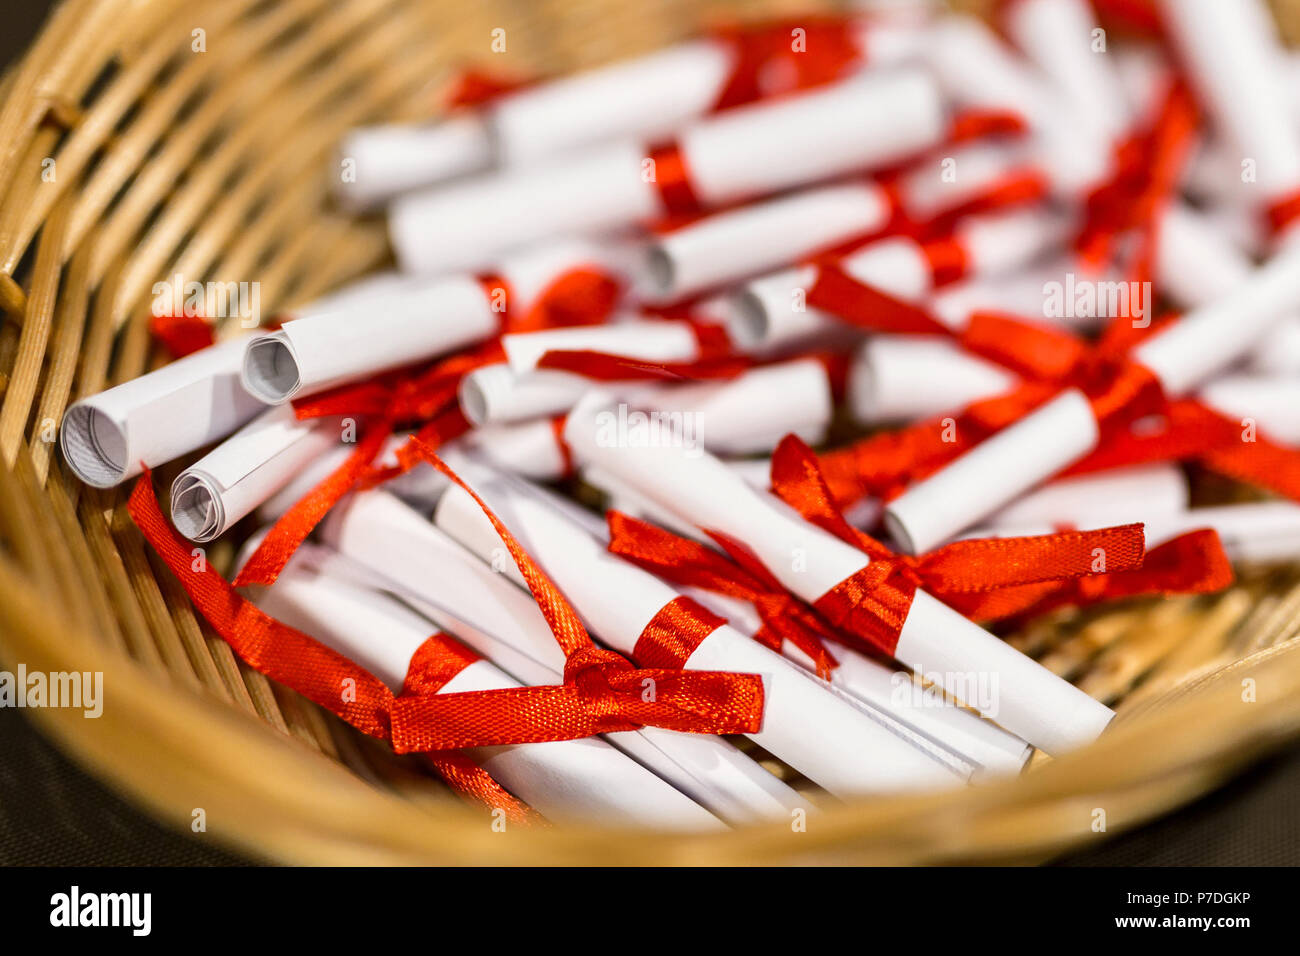 Pile of small paper scrolls in wicked basket.  White scrolls tied with red ribbon. Future prediction, advice or sign concept. - Stock Image